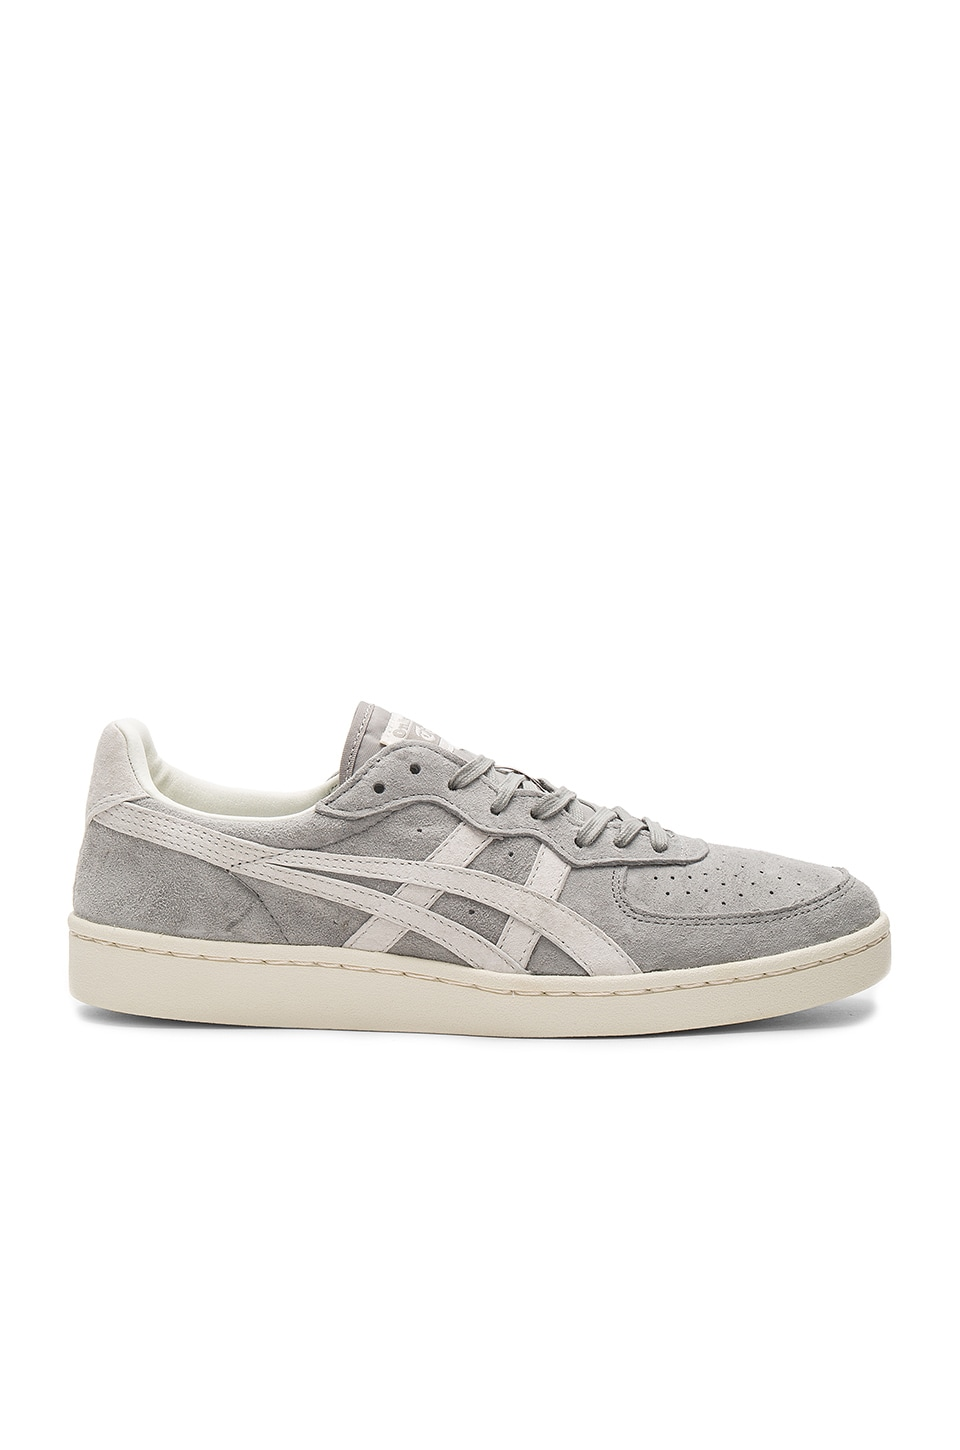 Onitsuka Tiger GSM in Light Grey & Off White | REVOLVE